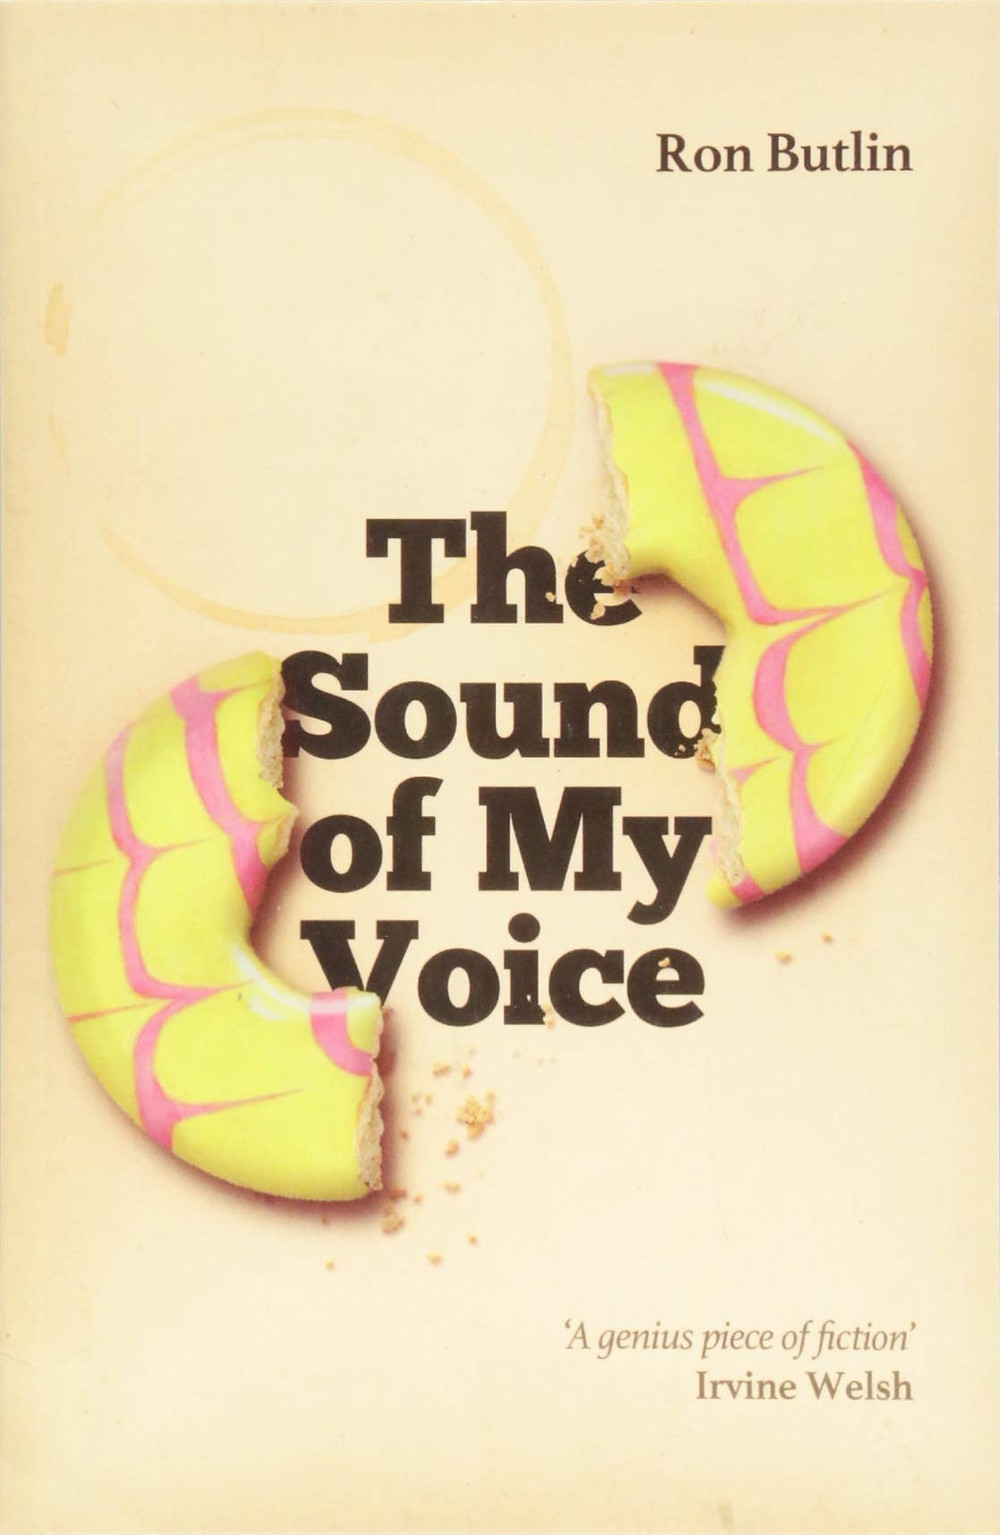 The Sound of My Voice by Ron Butlin